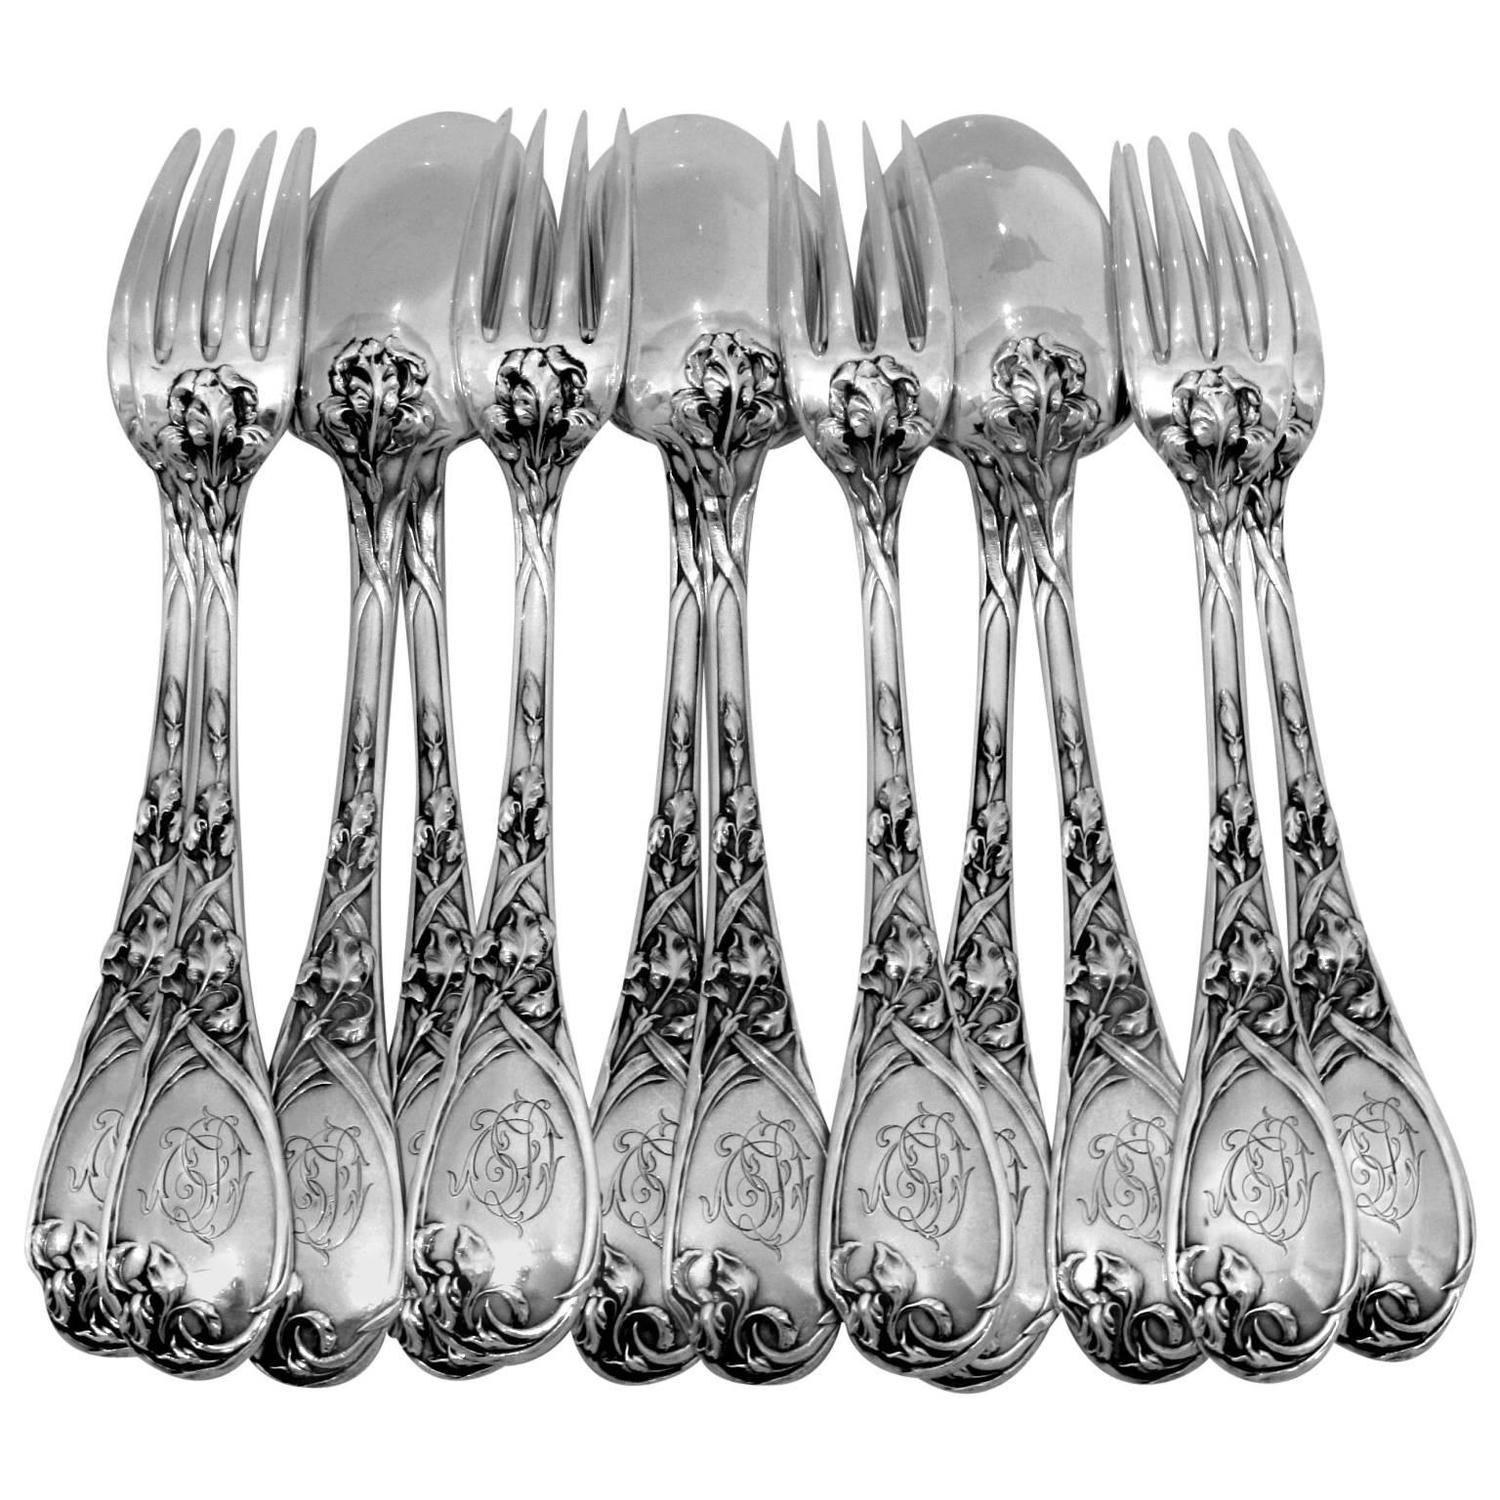 PUIFORCAT Fabulous French Sterling Silver Dinner Flatware Set 12 pc Iris | From a unique collection of vintage dinnerware and flatware sets at ...  sc 1 st  Pinterest & PUIFORCAT Fabulous French Sterling Silver Dinner Flatware Set 12 pc ...